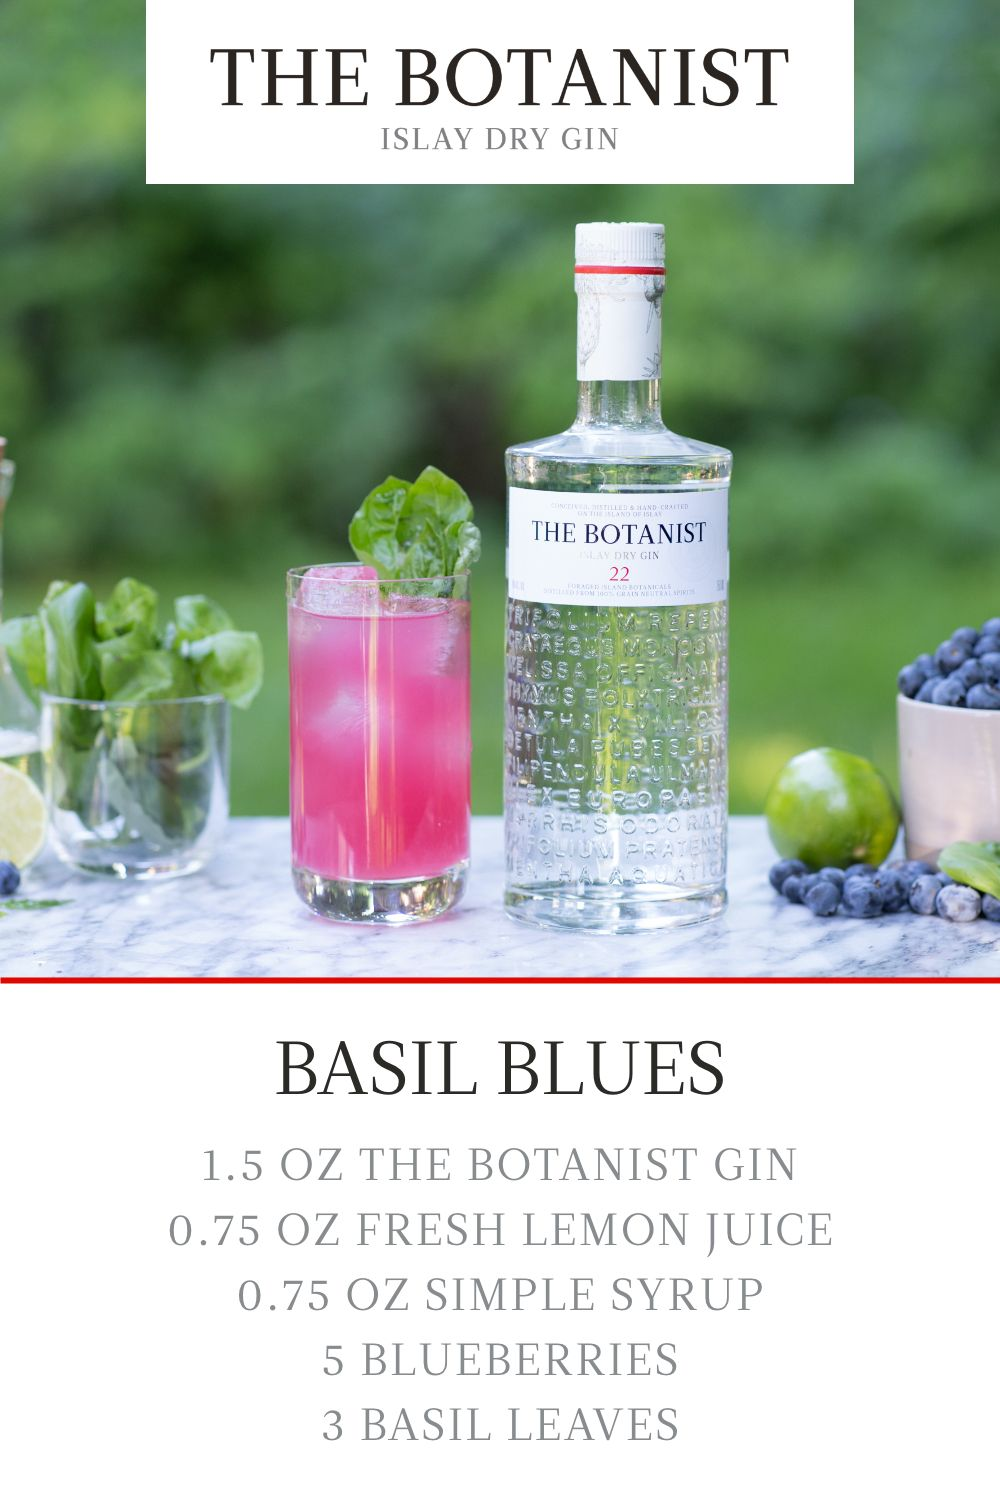 The Botanist Gin Basil Blues Drinks Alcohol Recipes Botanist Gin Alcohol Drink Recipes